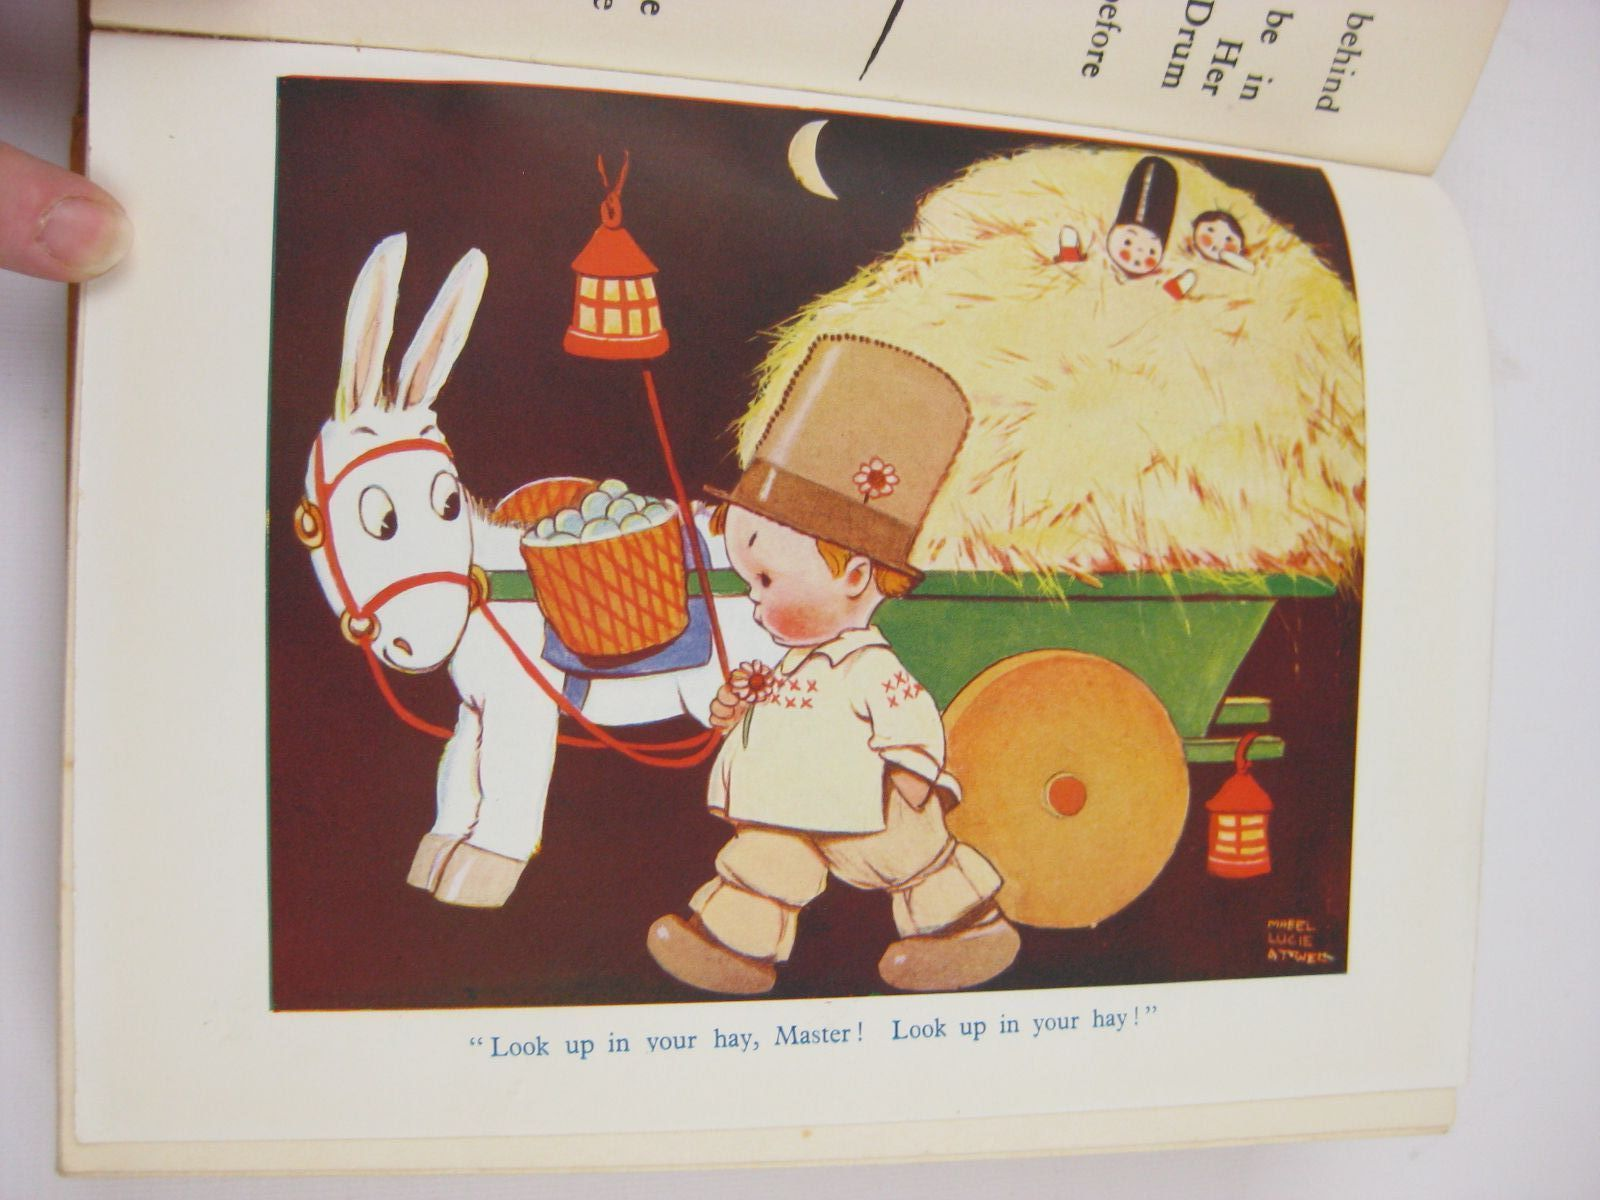 Photo of LUCIE ATTWELL'S CHILDREN'S BOOK written by Attwell, Mabel Lucie<br />Weatherly, Christine<br />Herbertson, Agnes Grozier<br />Lea, John<br />et al, illustrated by Attwell, Mabel Lucie published by S.W. Partridge & Co. (STOCK CODE: 1507693)  for sale by Stella & Rose's Books